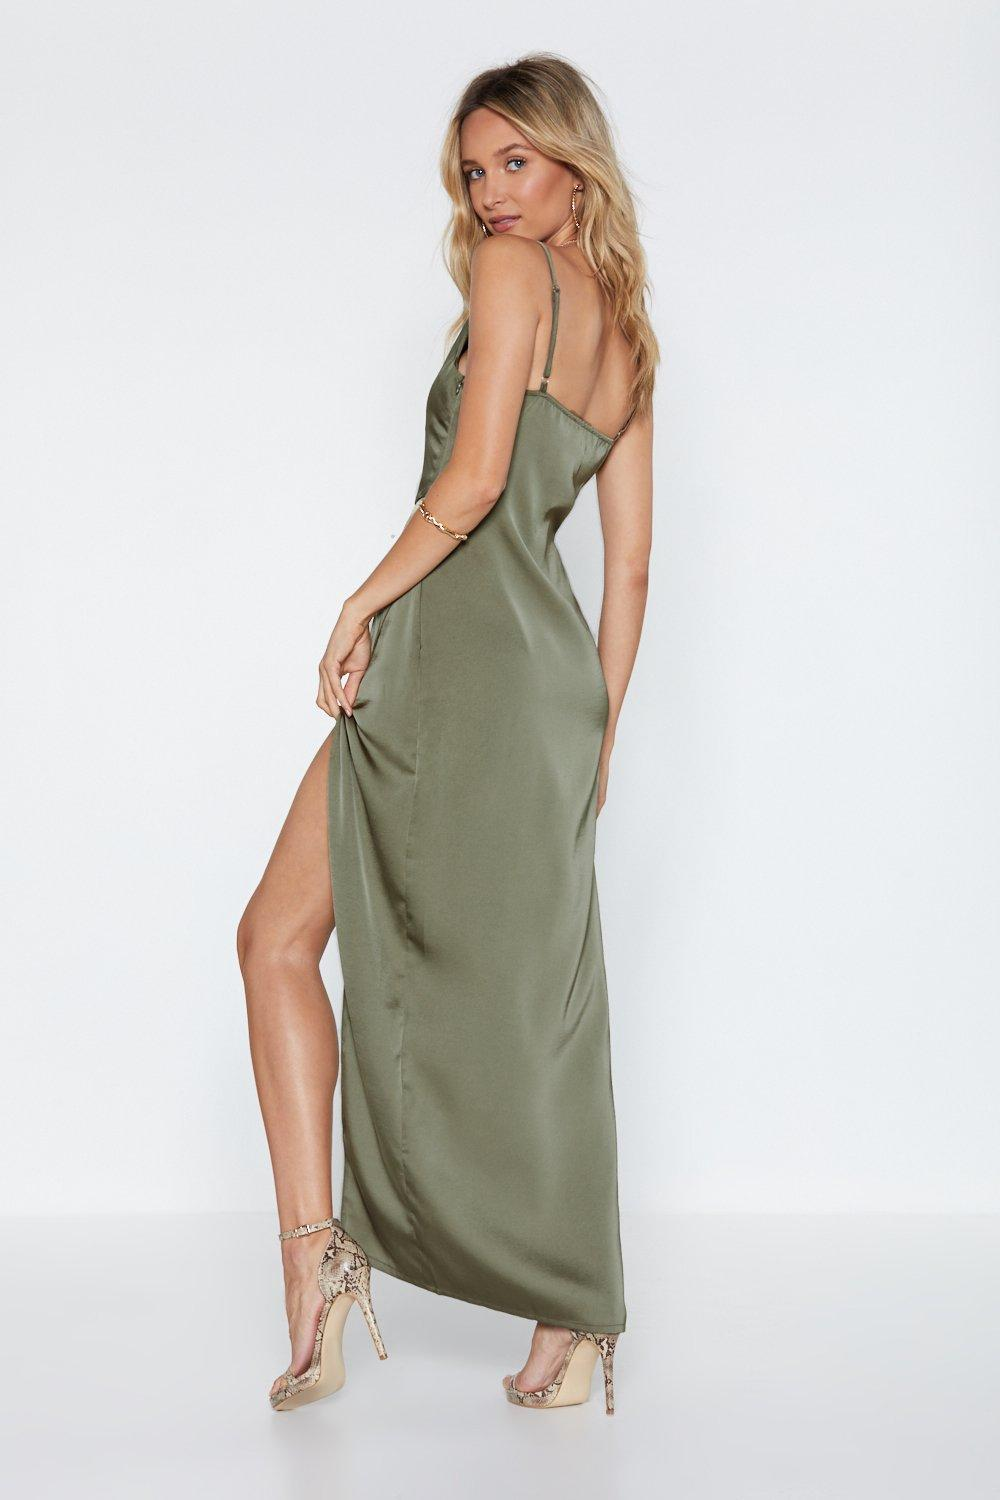 7cace63cbb8 Womens Sage Cowl Play Satin Dress. Hover to zoom